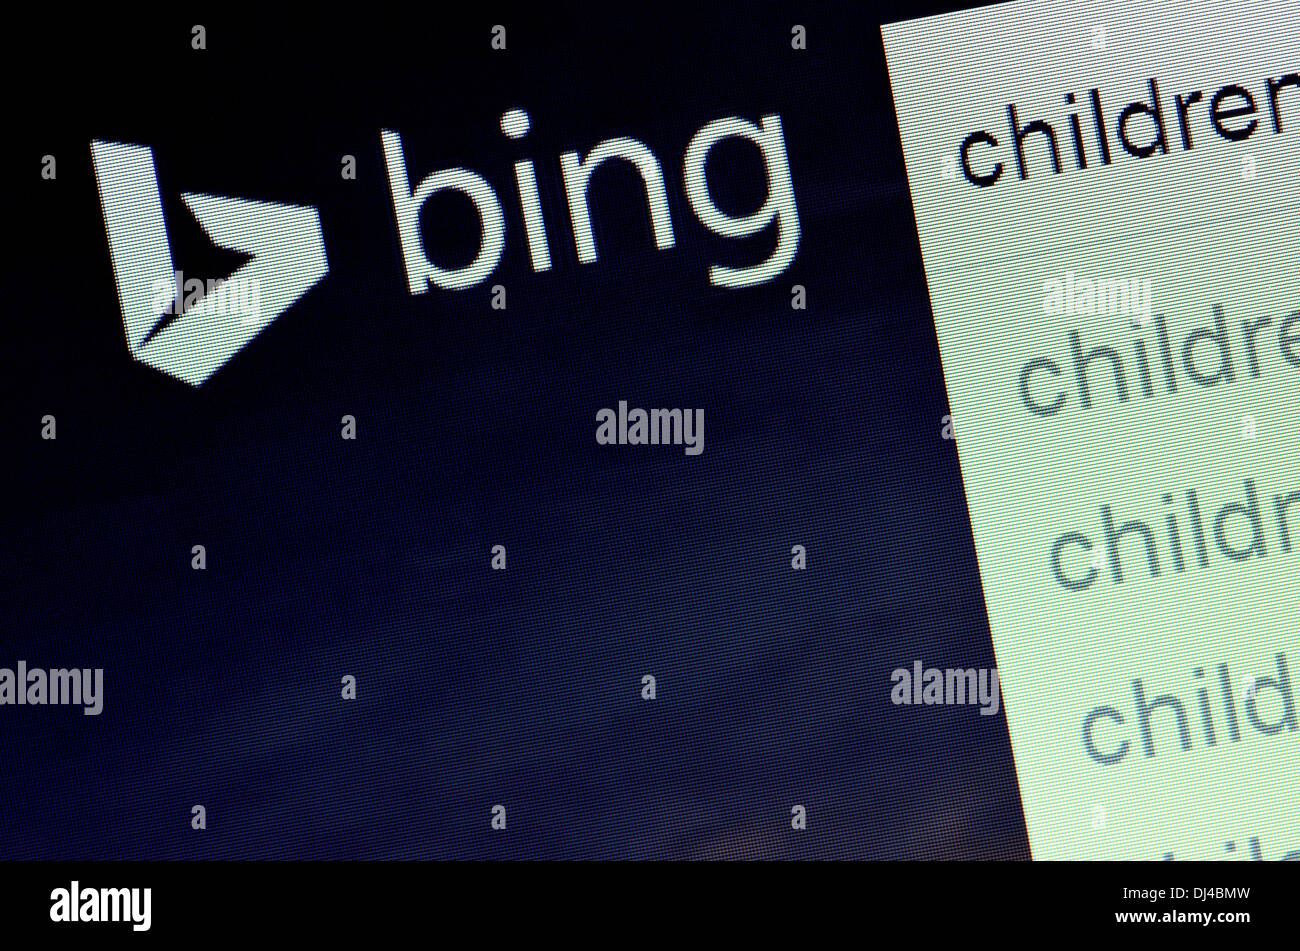 Computer screenshot - Bing search engine - search for 'children' - Stock Image